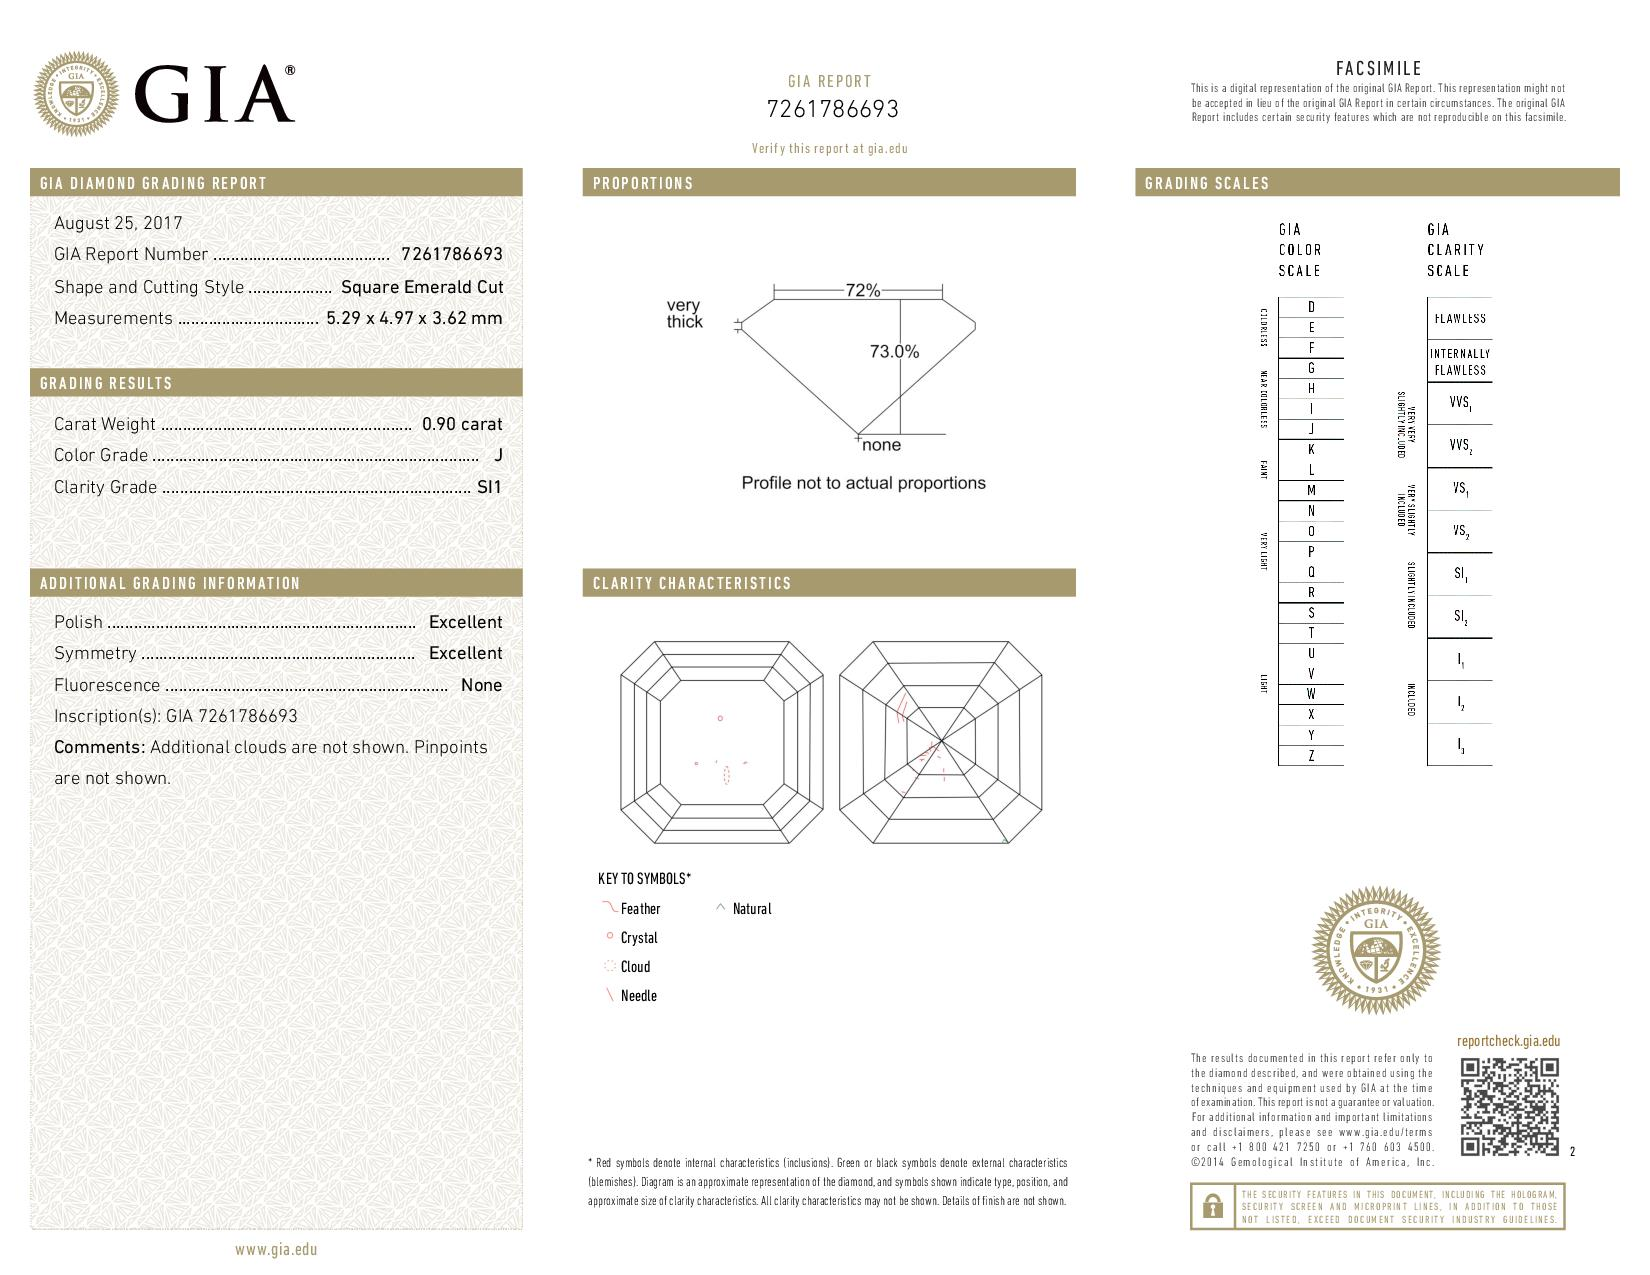 This is a 0.90 carat asscher shape, J color, SI1 clarity natural diamond accompanied by a GIA grading report.